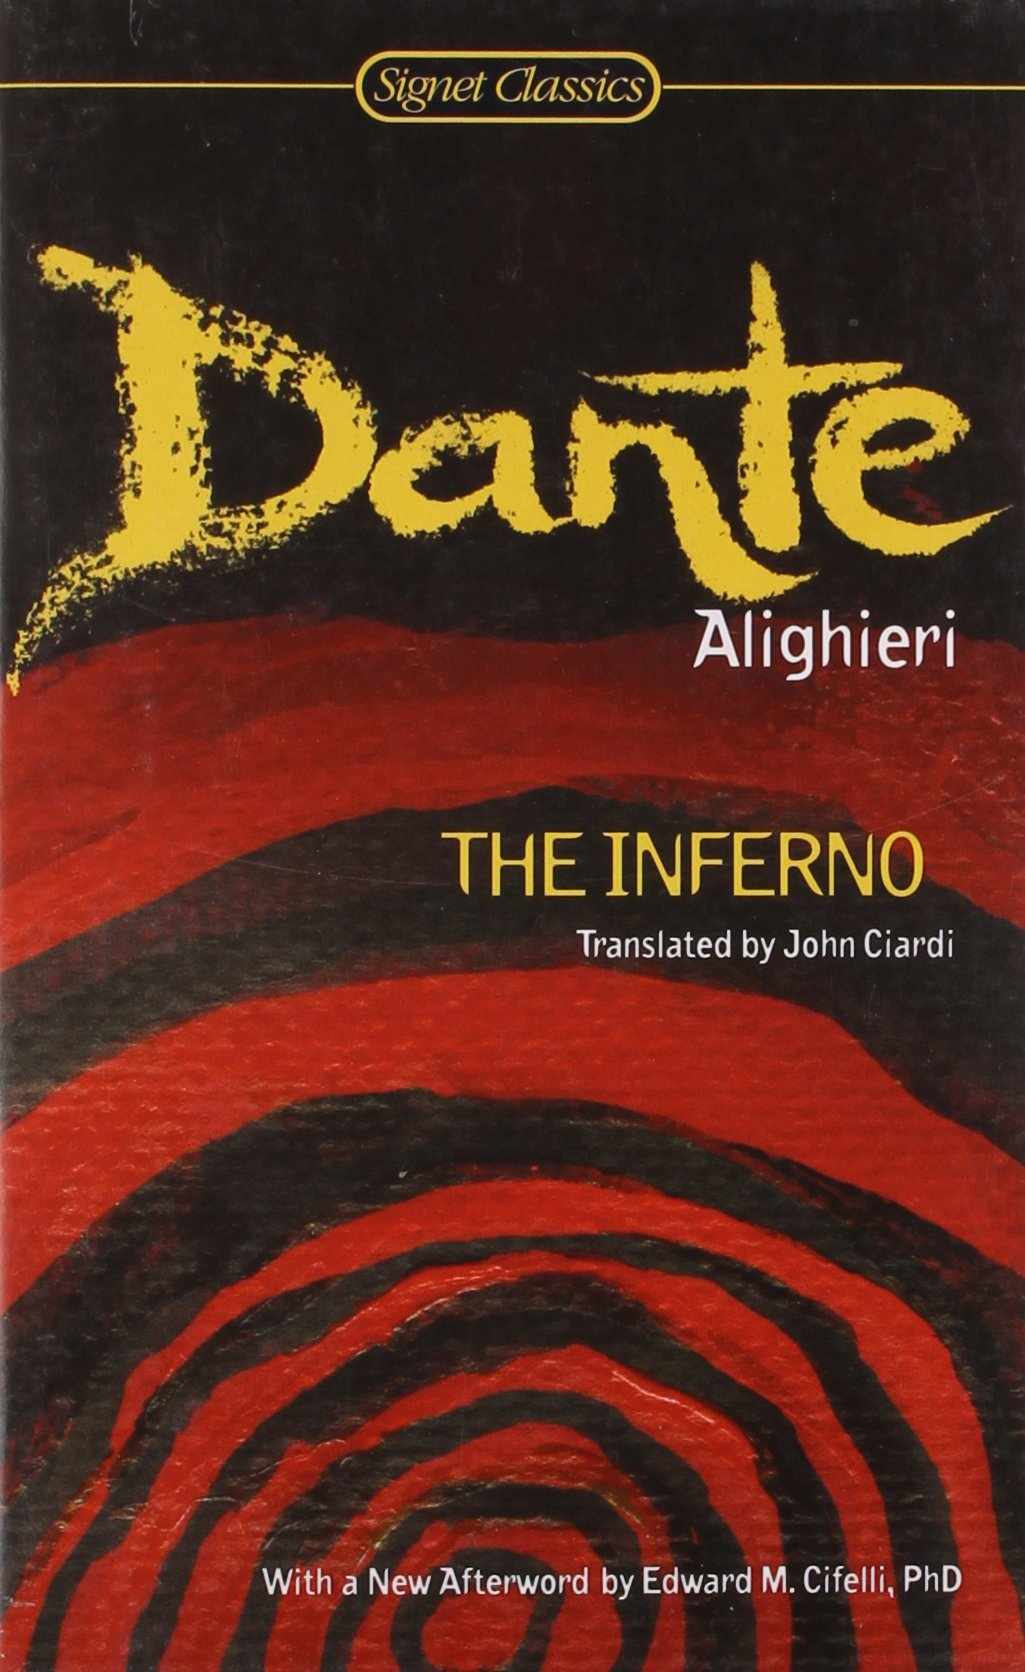 a literary analysis of the inferno by dante Lectura dantis: inferno xxxiii  for the contemporary reader of dante's  many literary analysts have found an interpretation of this scene that keeps ugolino.